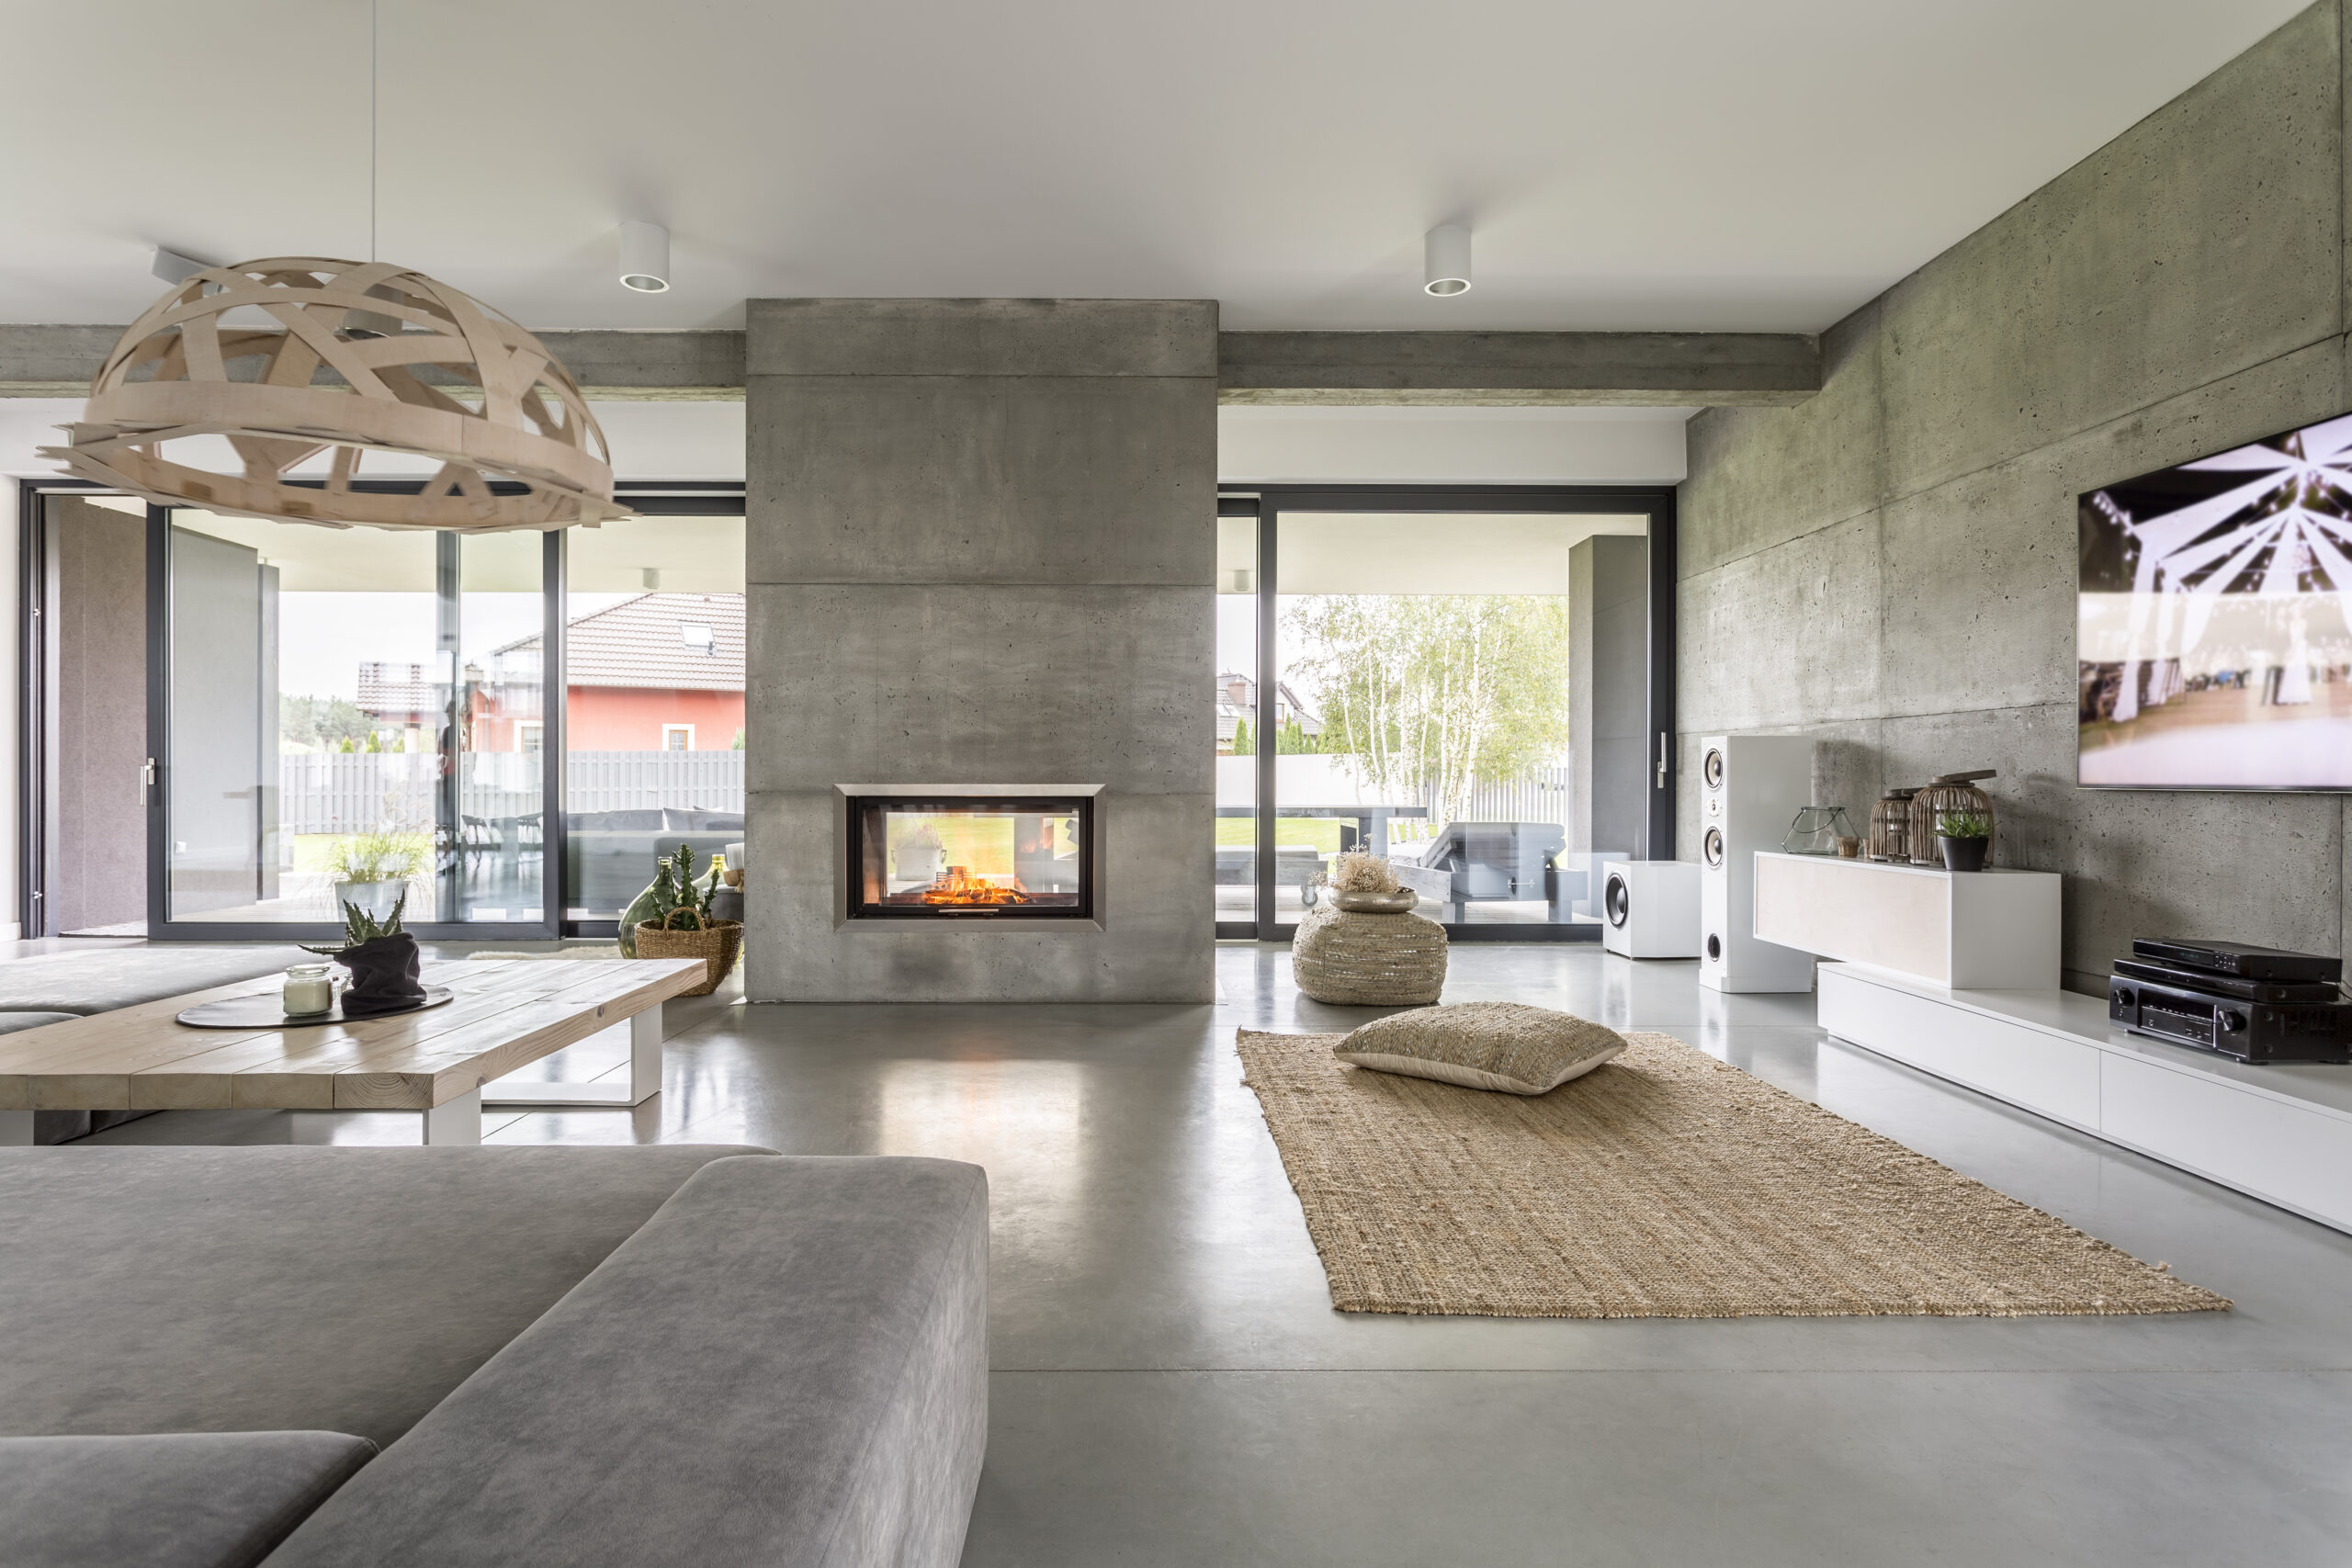 alt-Spacious,villa,interior,with,cement,wall,effect,,fireplace,and,tv